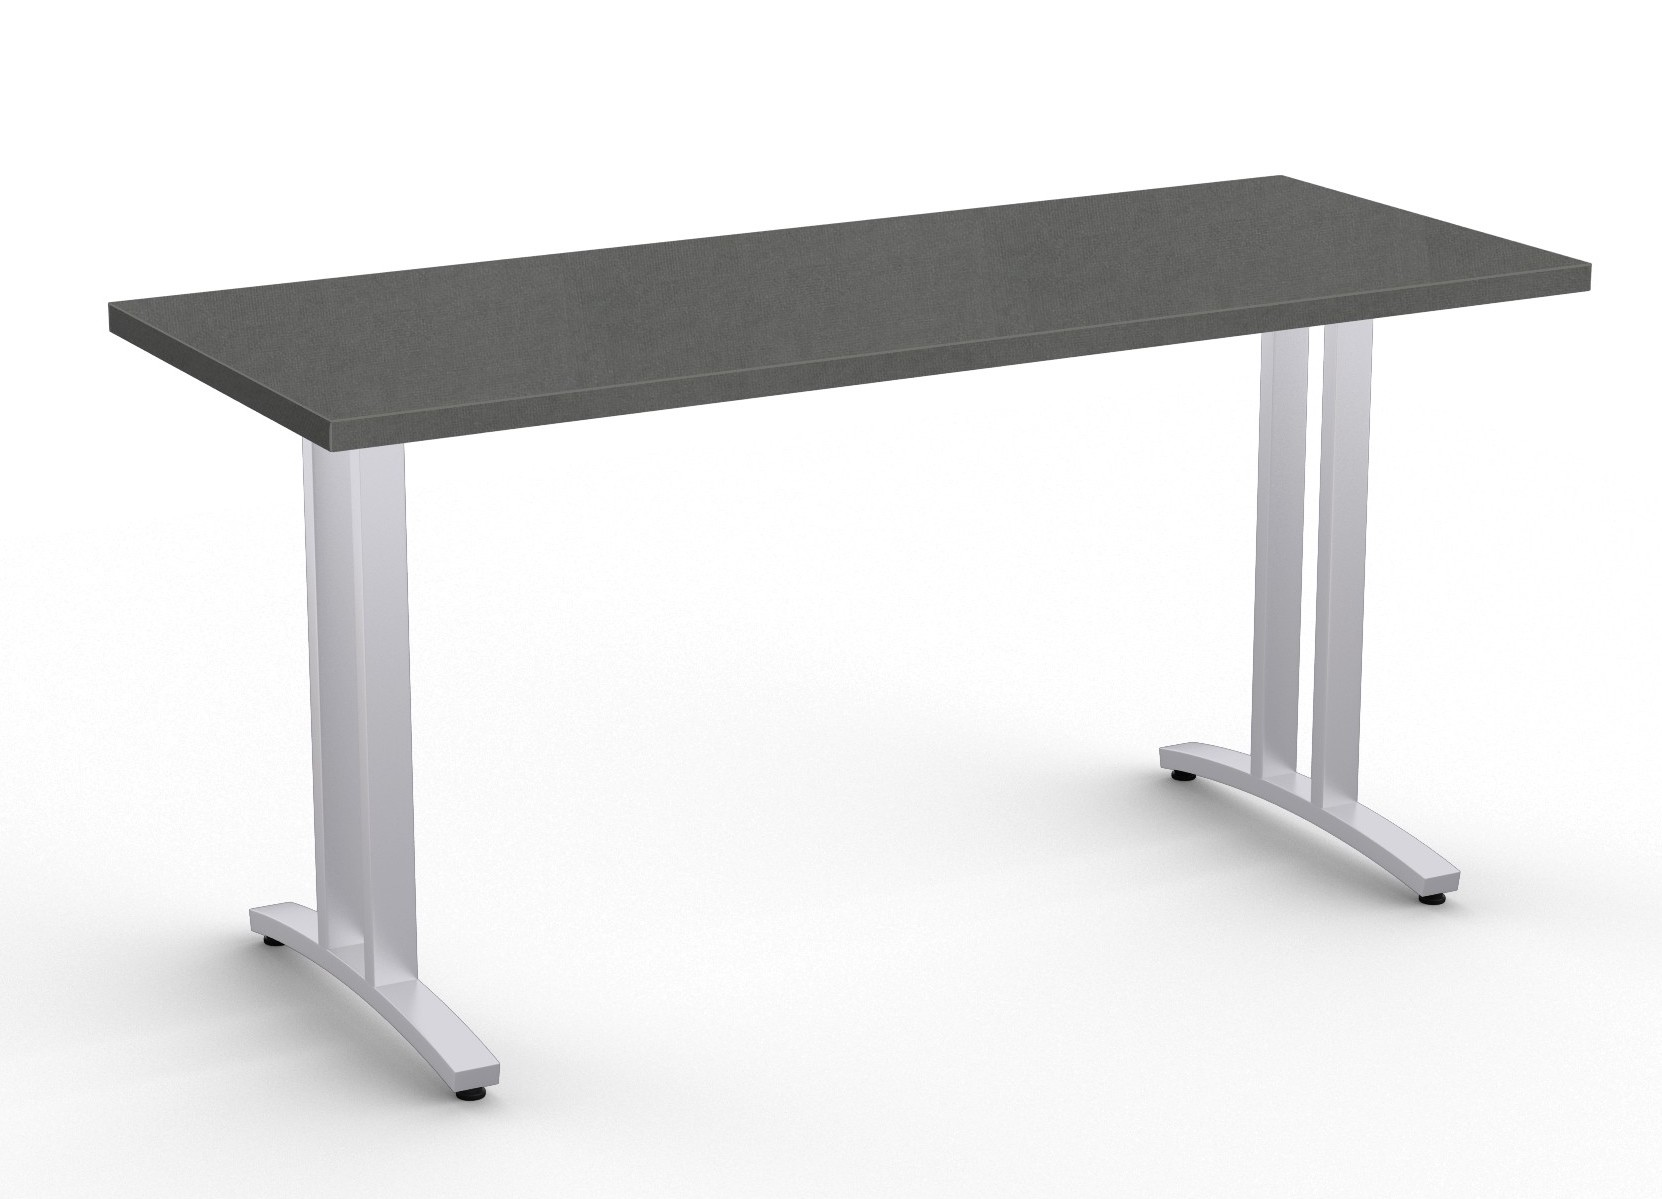 special-t structure 2tl work table in chino